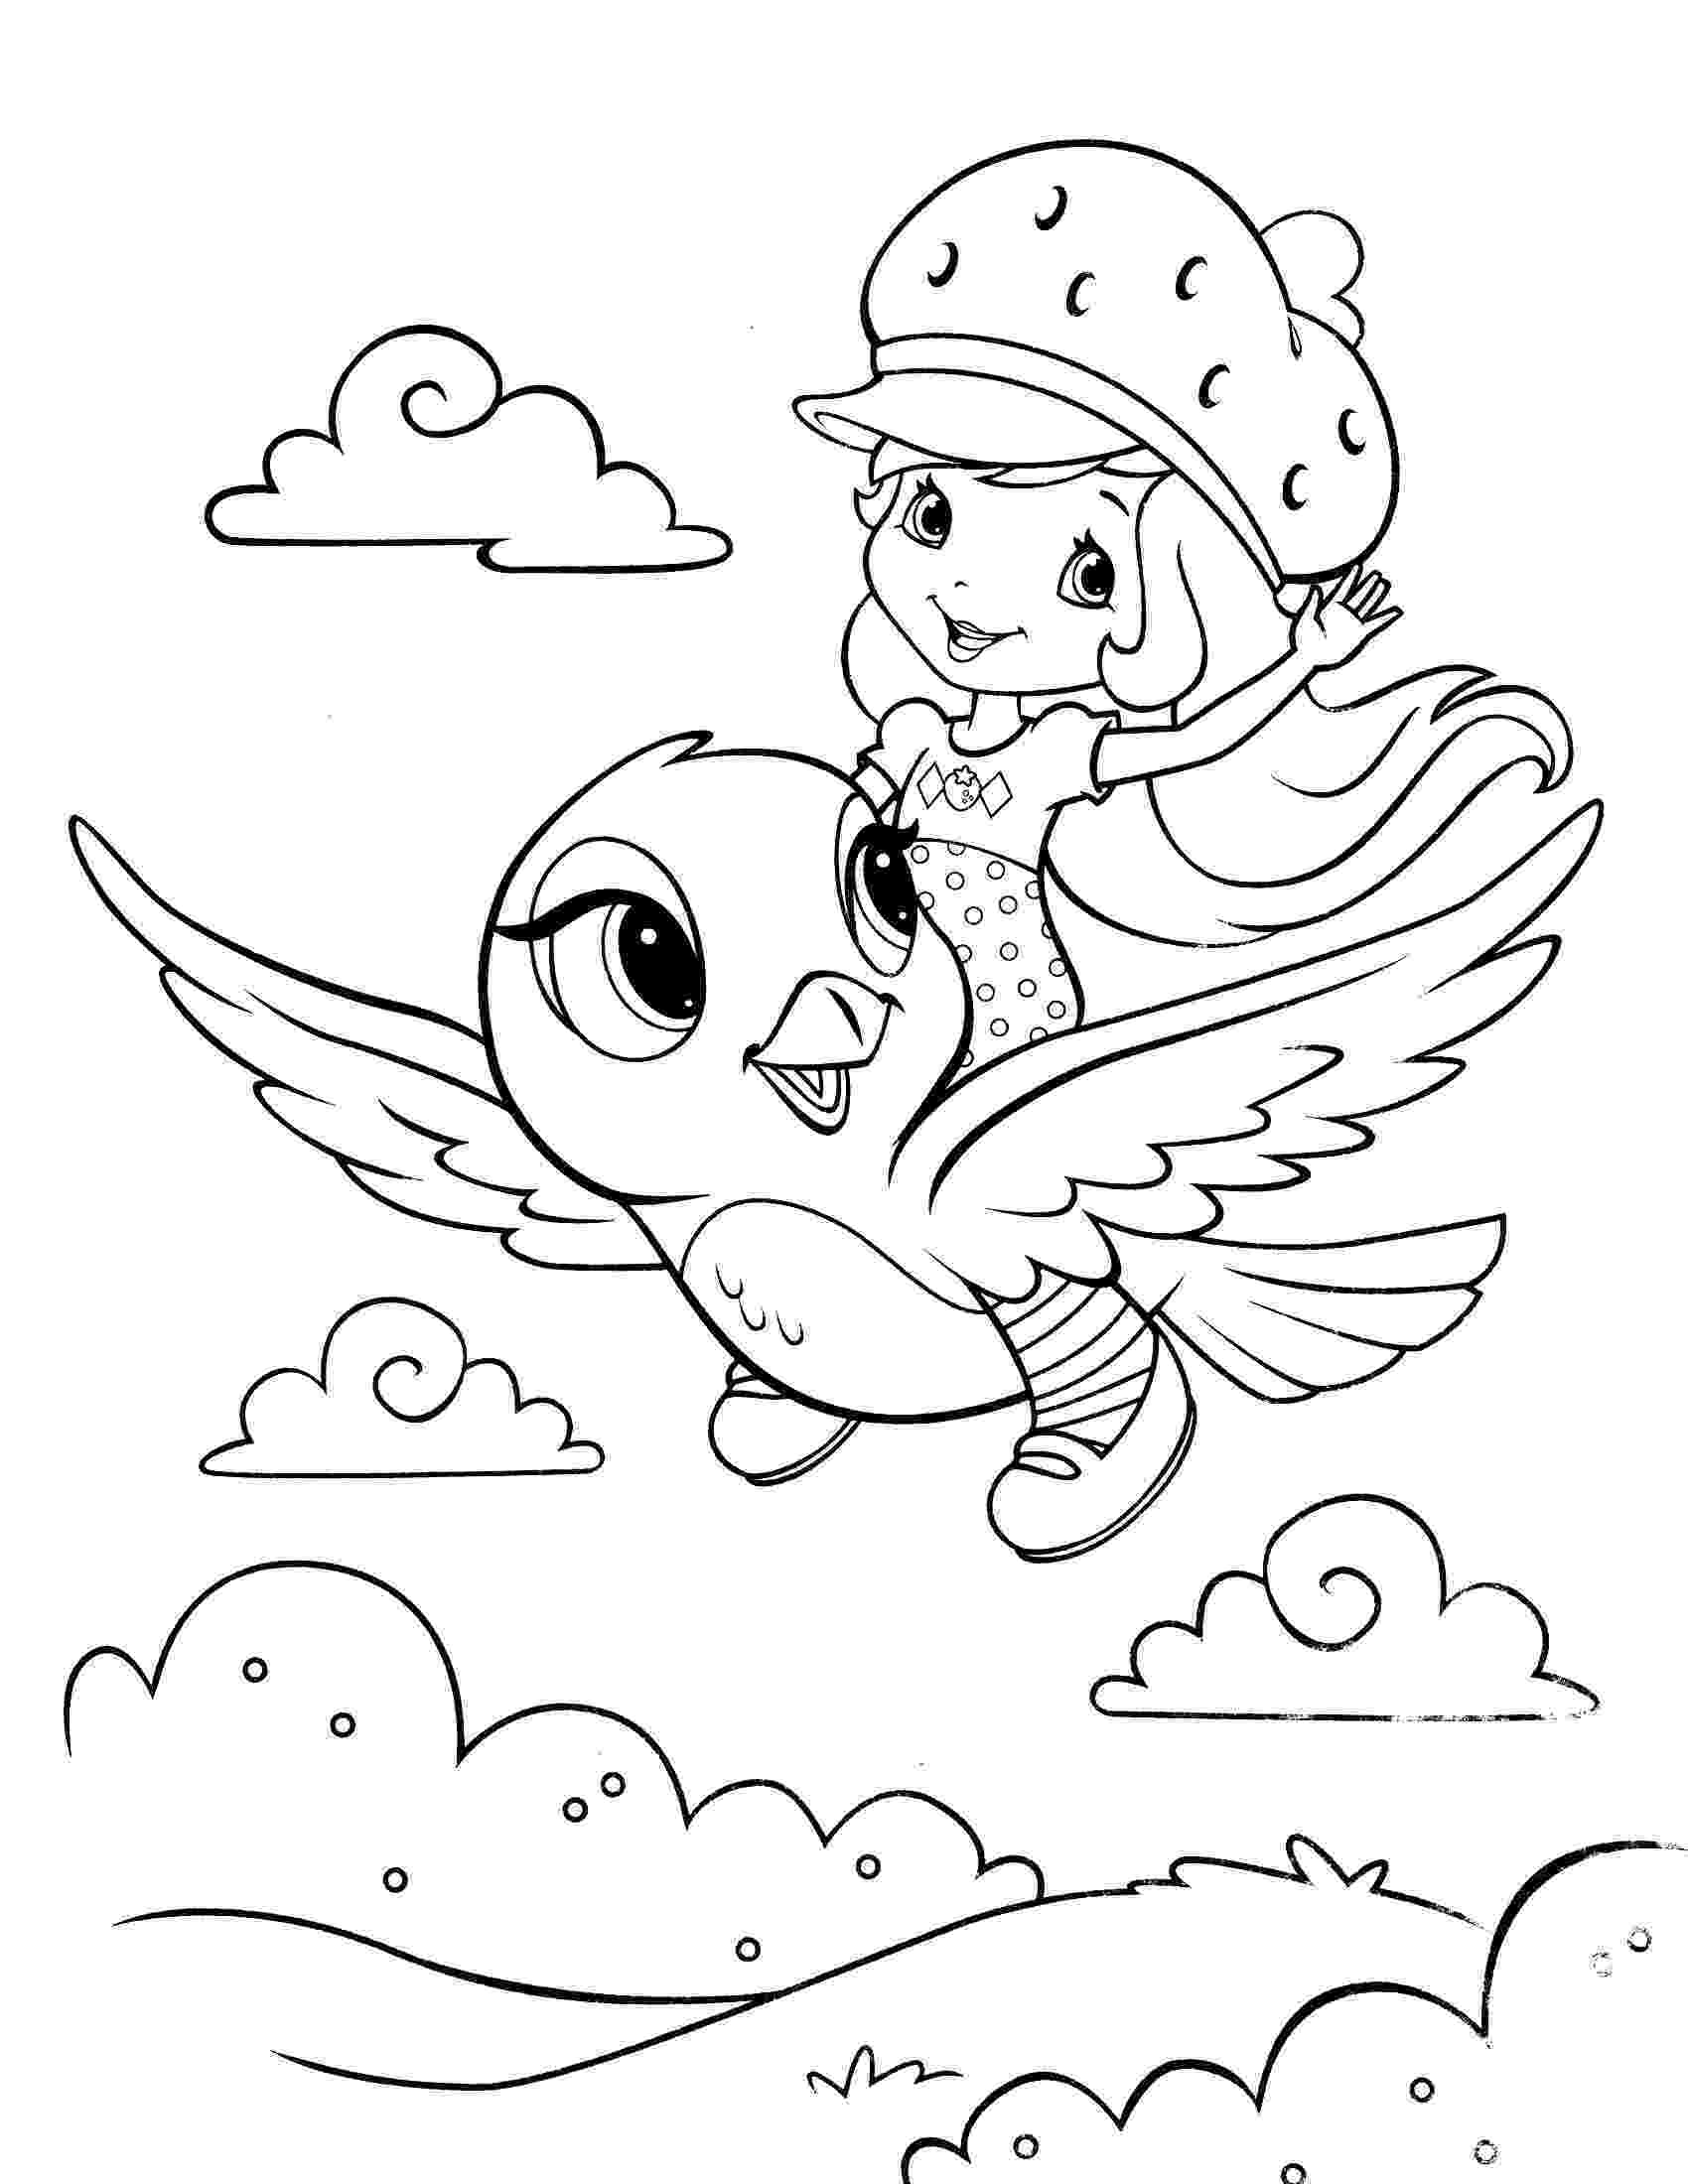 strawberry shortcake coloring pages free strawberry shortcake cheerleader coloring page free free coloring strawberry pages shortcake